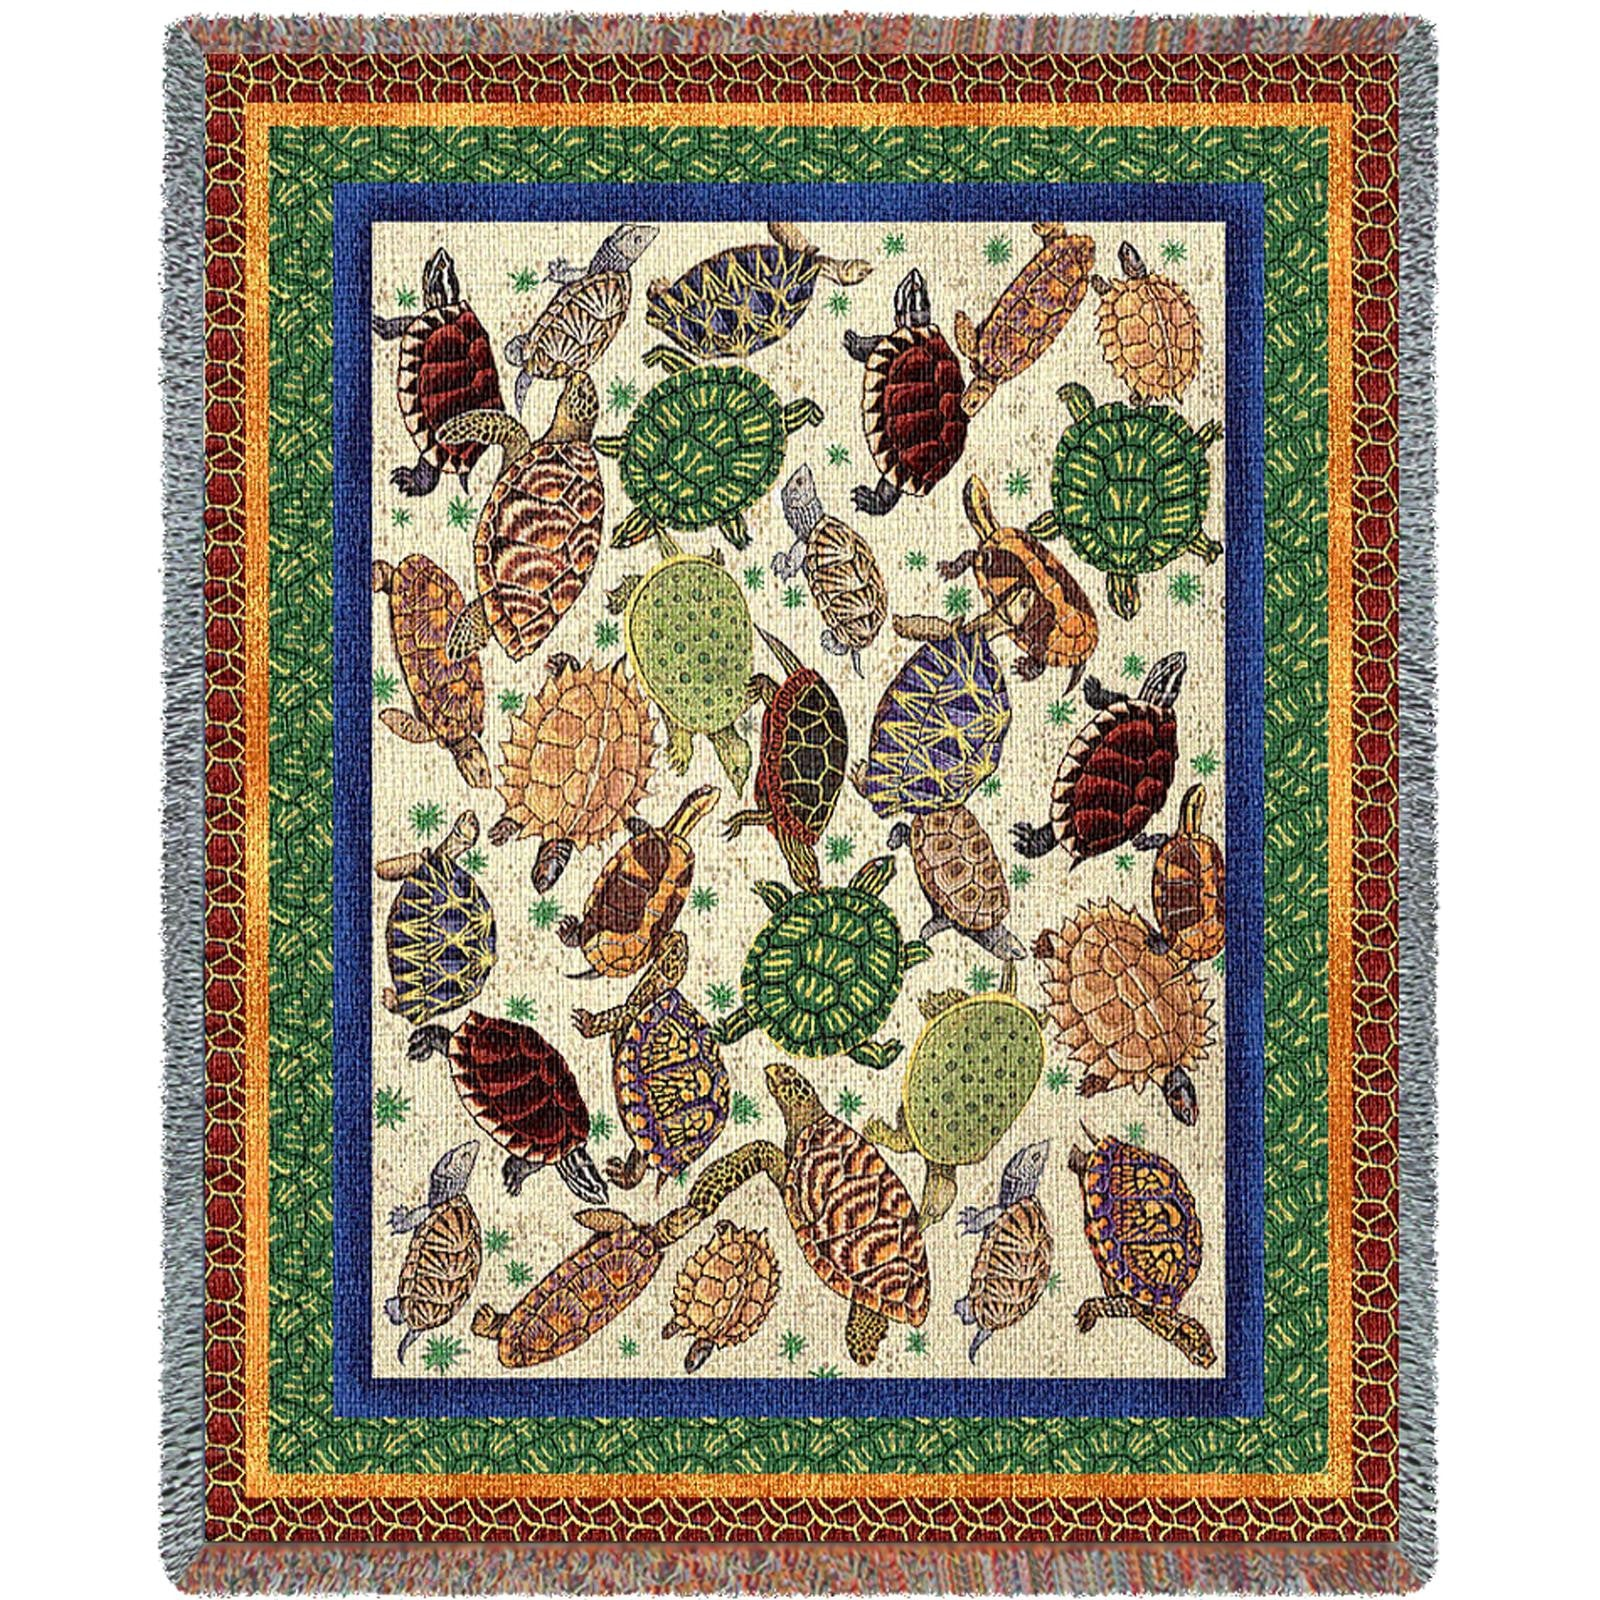 Turtles (Nature) Tapestry Throw